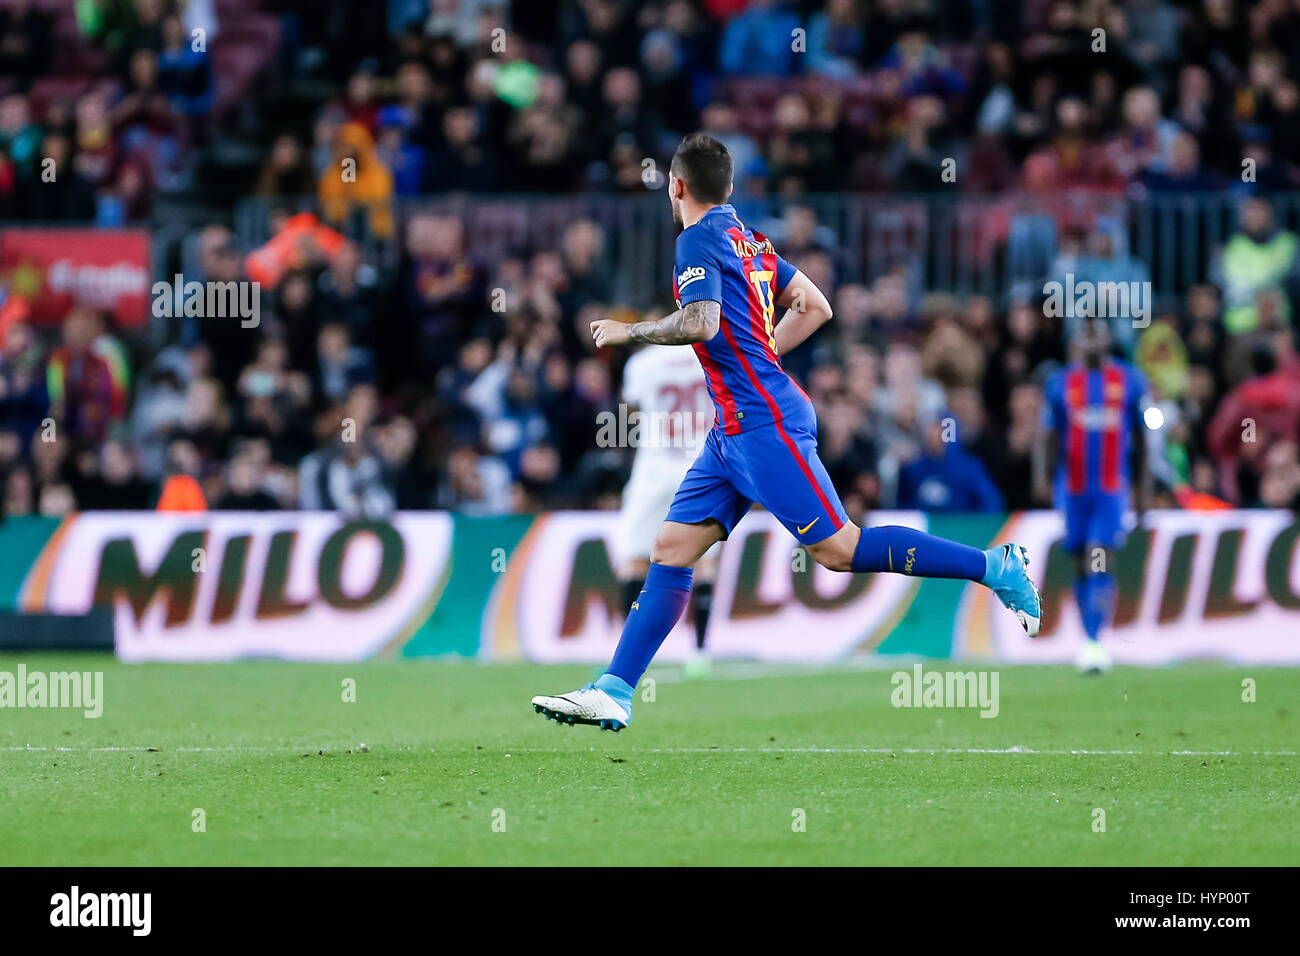 April 5, 2017: Paco Alcacer during the match between FC Barcelona vs Sevilla, for the round 30 of the Liga Santander, - Stock Image